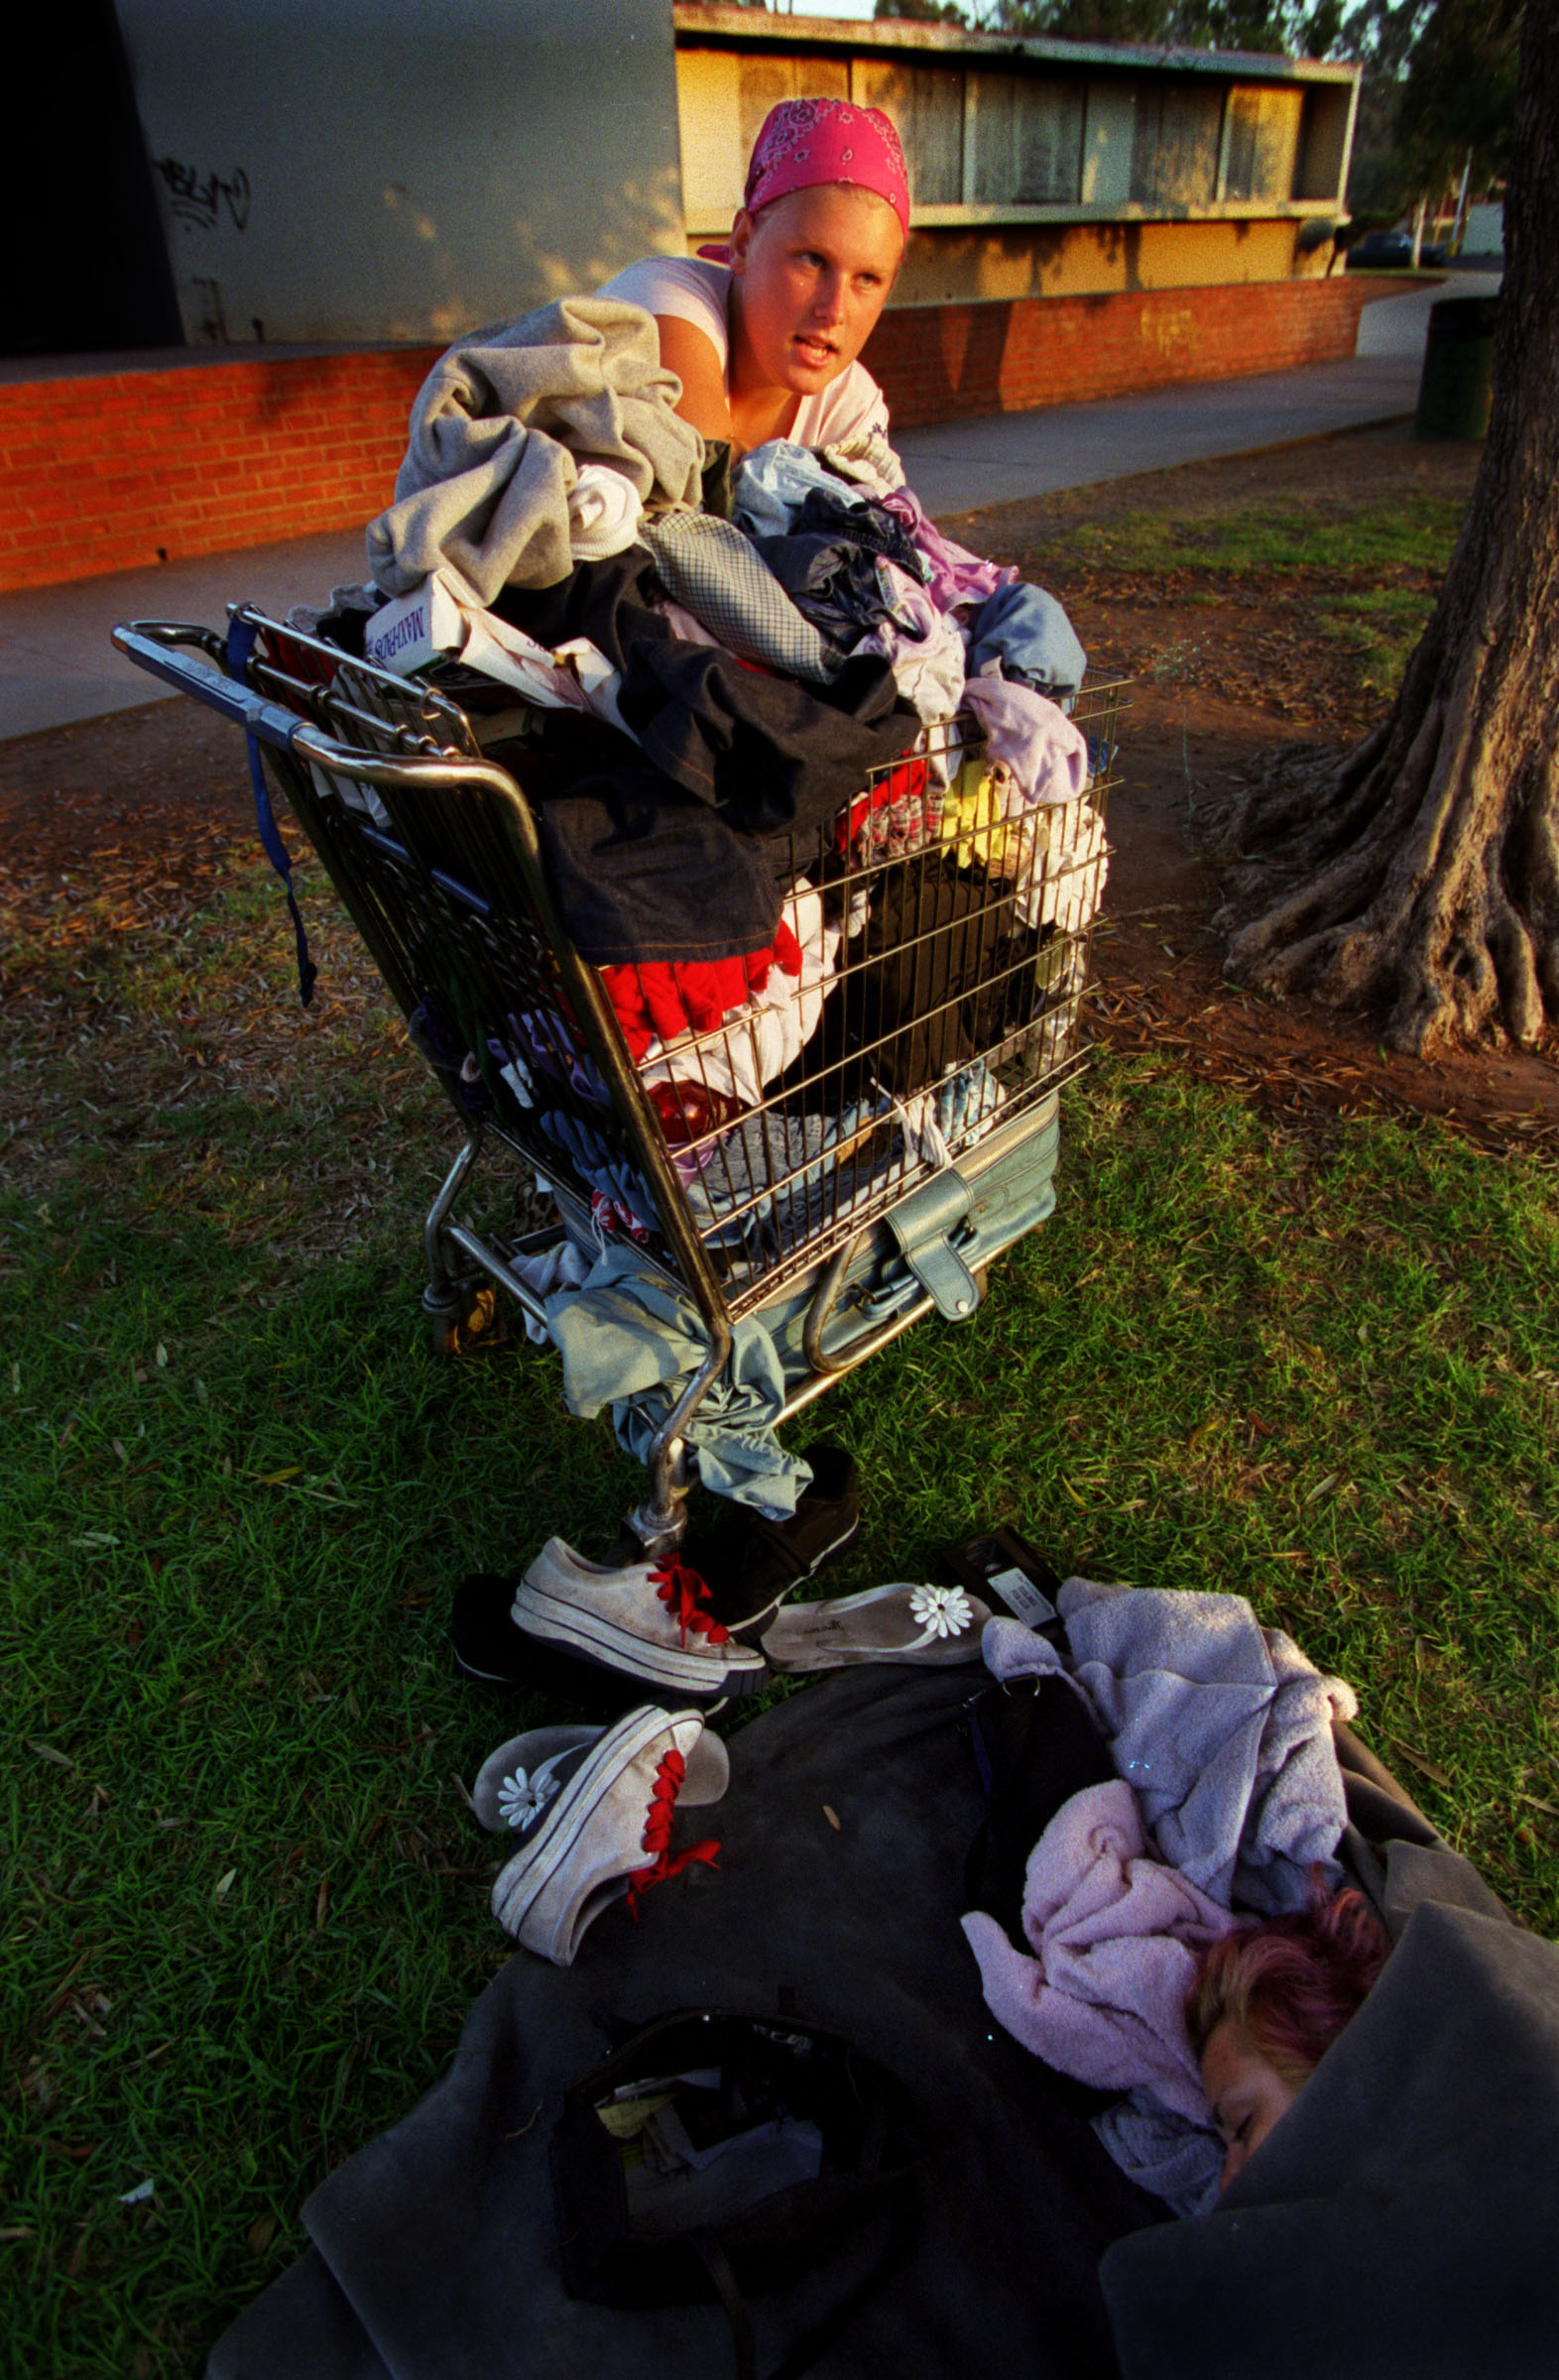 """I have nothing but the clothes that I own. That's about it, that's all I own is a cart with my clothes in it and like a couple of pictures and that's about it... But what can I do? It's just a big mess, "" says Janea. ©Gail Fisher Los Angeles Times"